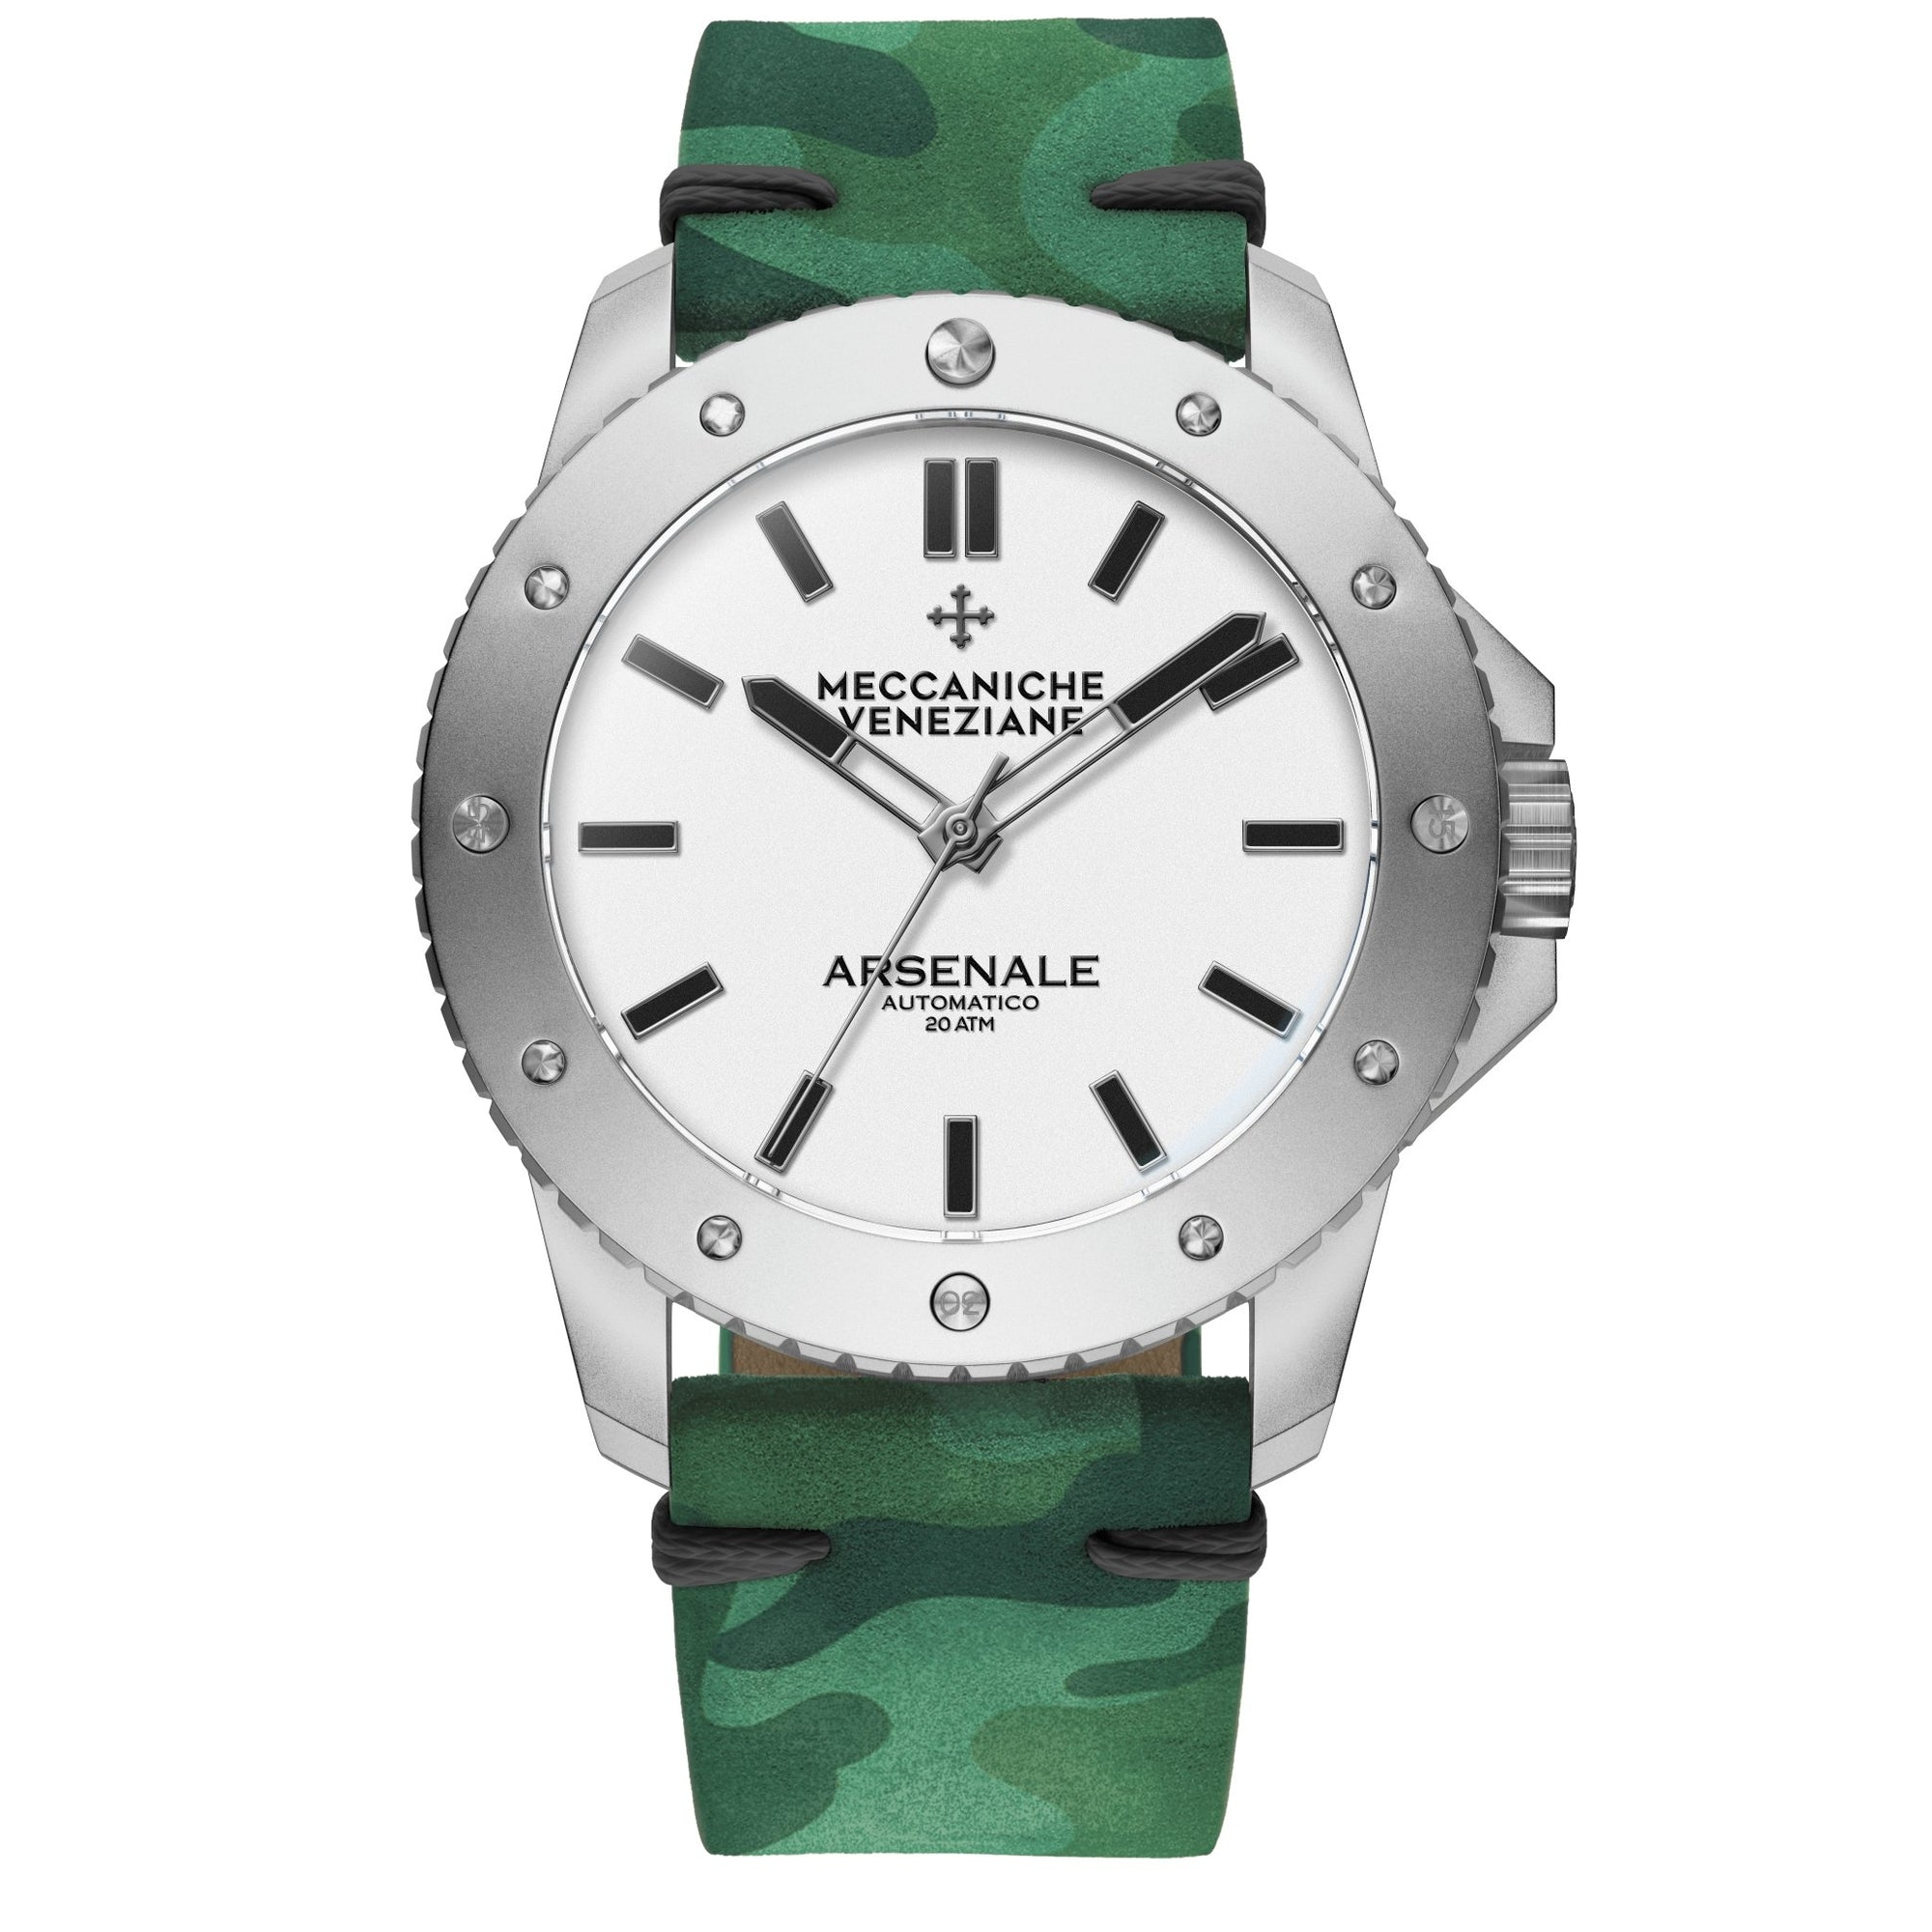 Meccaniche Veneziane Arsenale Forest Camouflage - Watches & Crystals